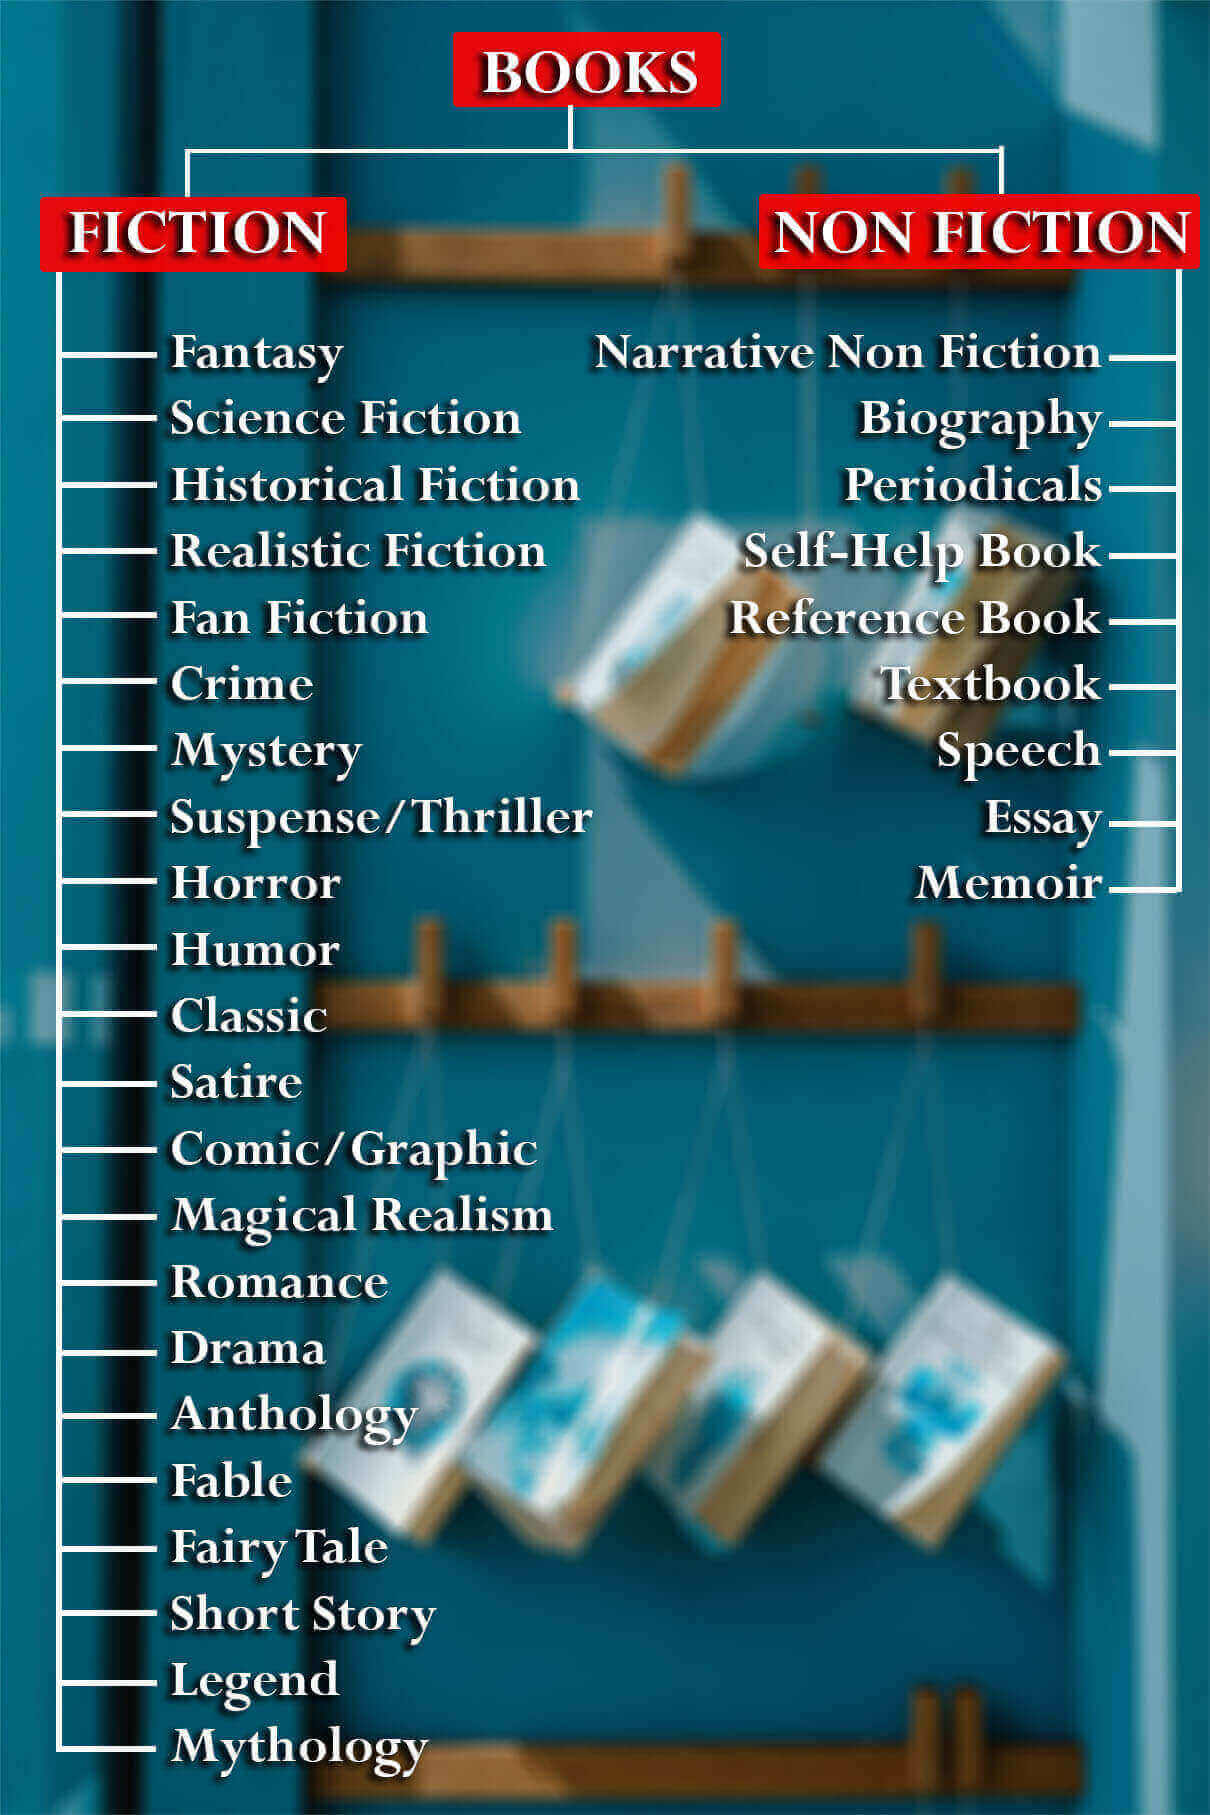 Different Types or Genres of Books With Examples